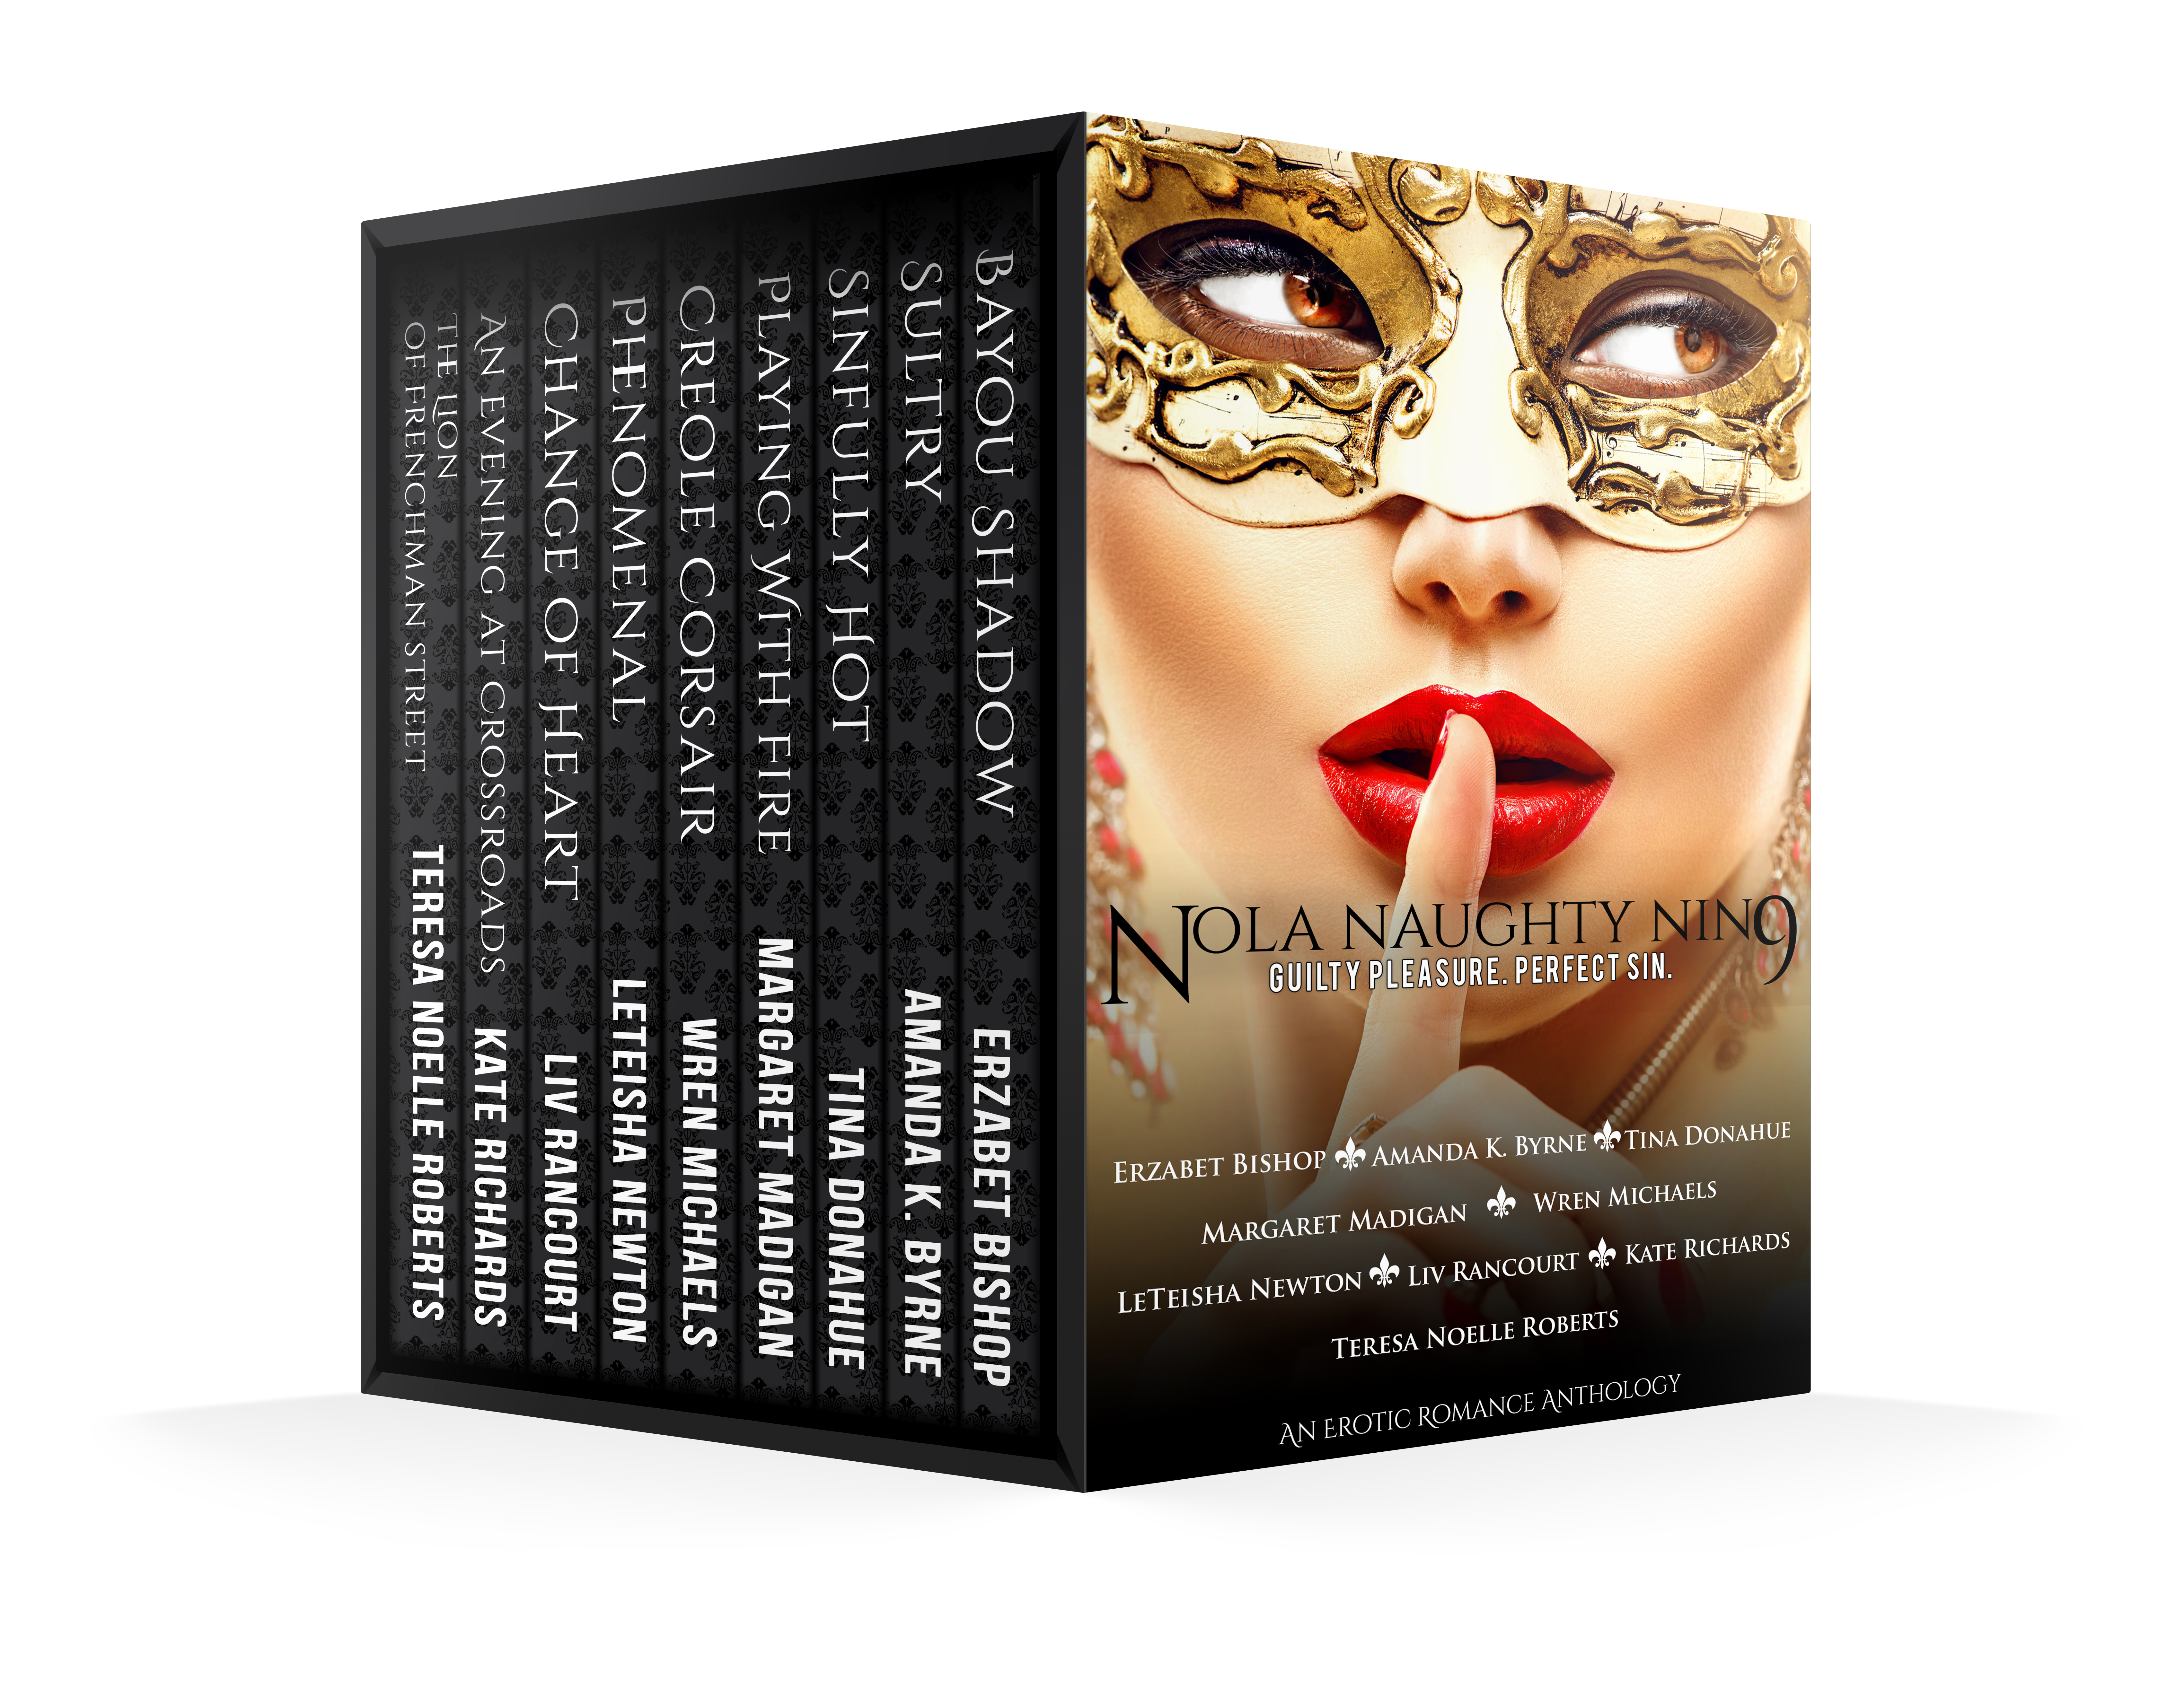 Naughty Nine Boxed Set Cover Complete